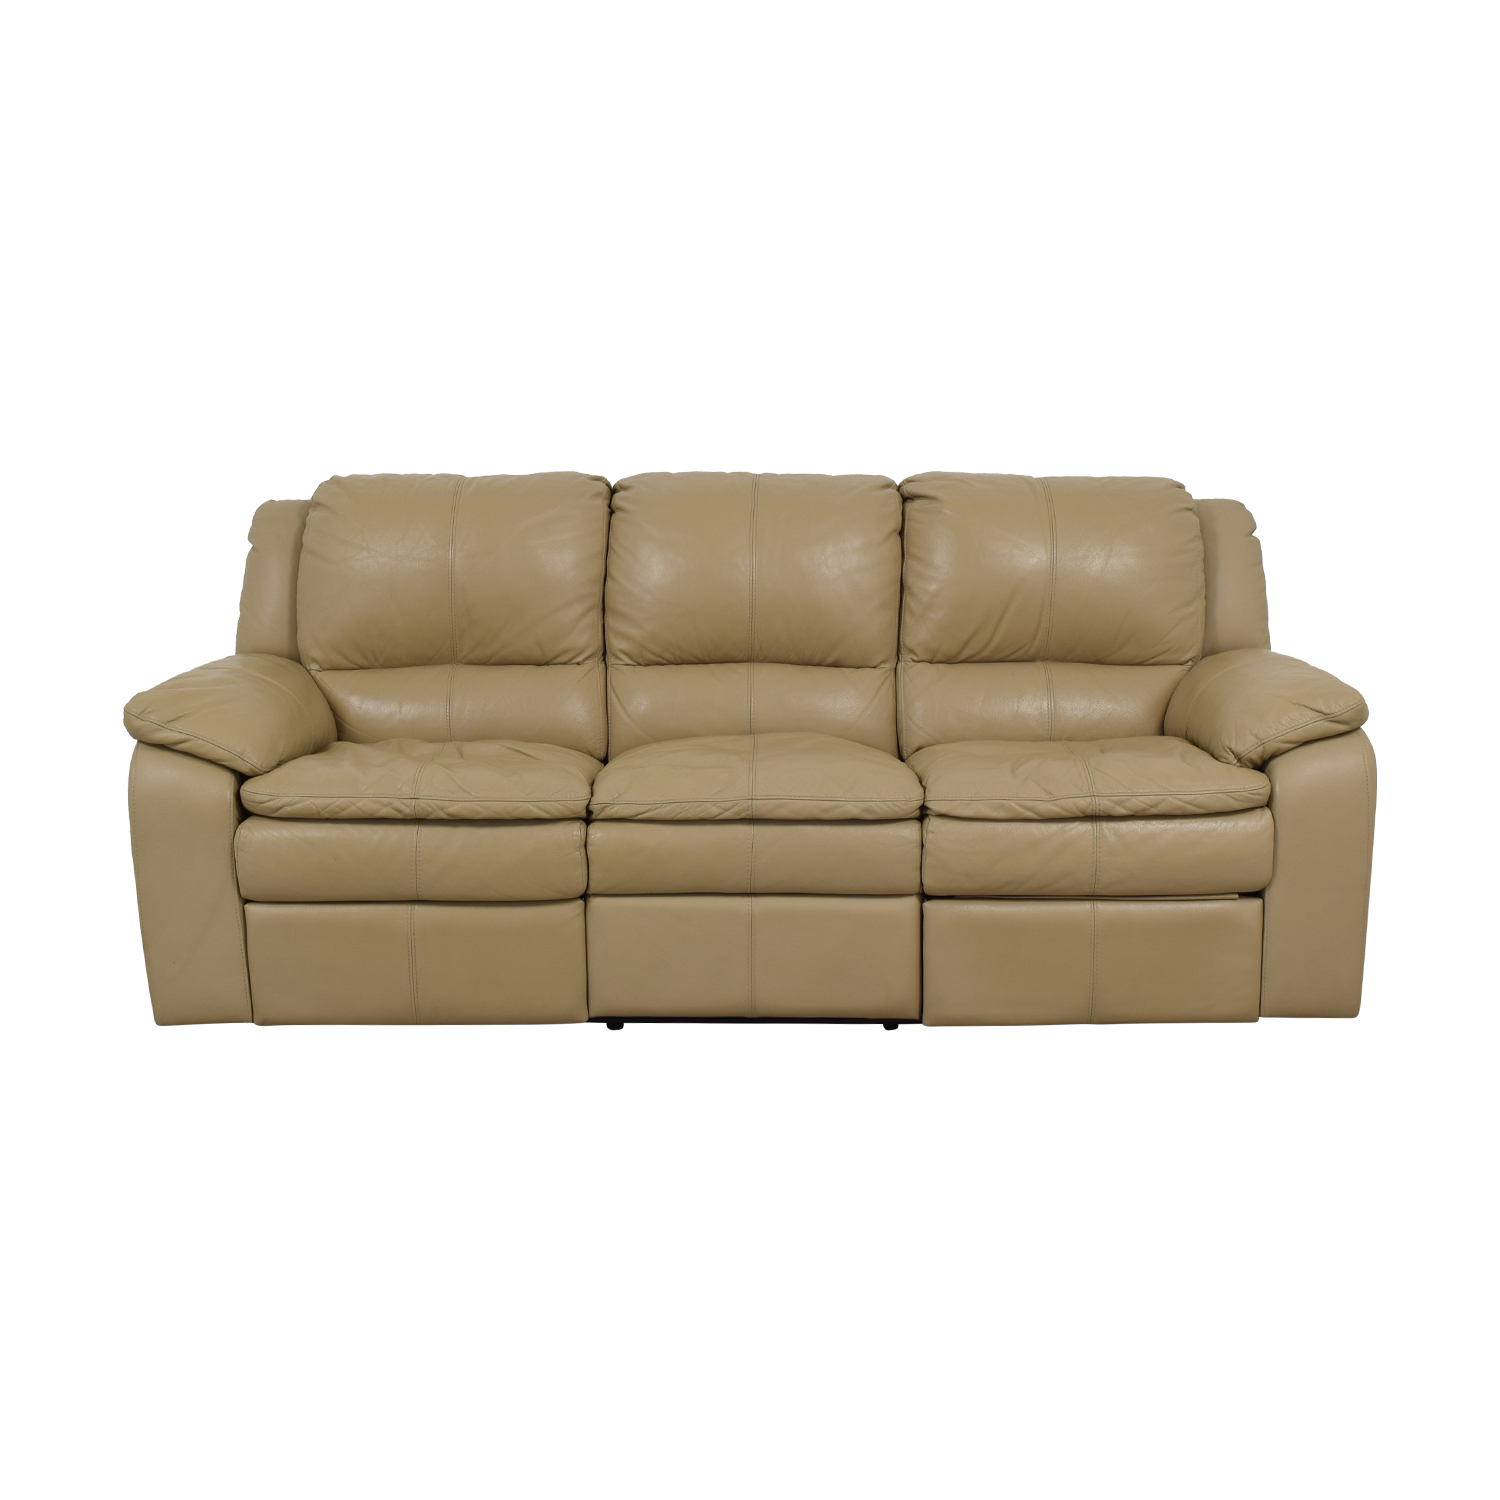 Remarkable 77 Off Jennifer Furniture Jennifer Furniture Beige Leather Three Seater Reclining Sofa Sofas Gmtry Best Dining Table And Chair Ideas Images Gmtryco